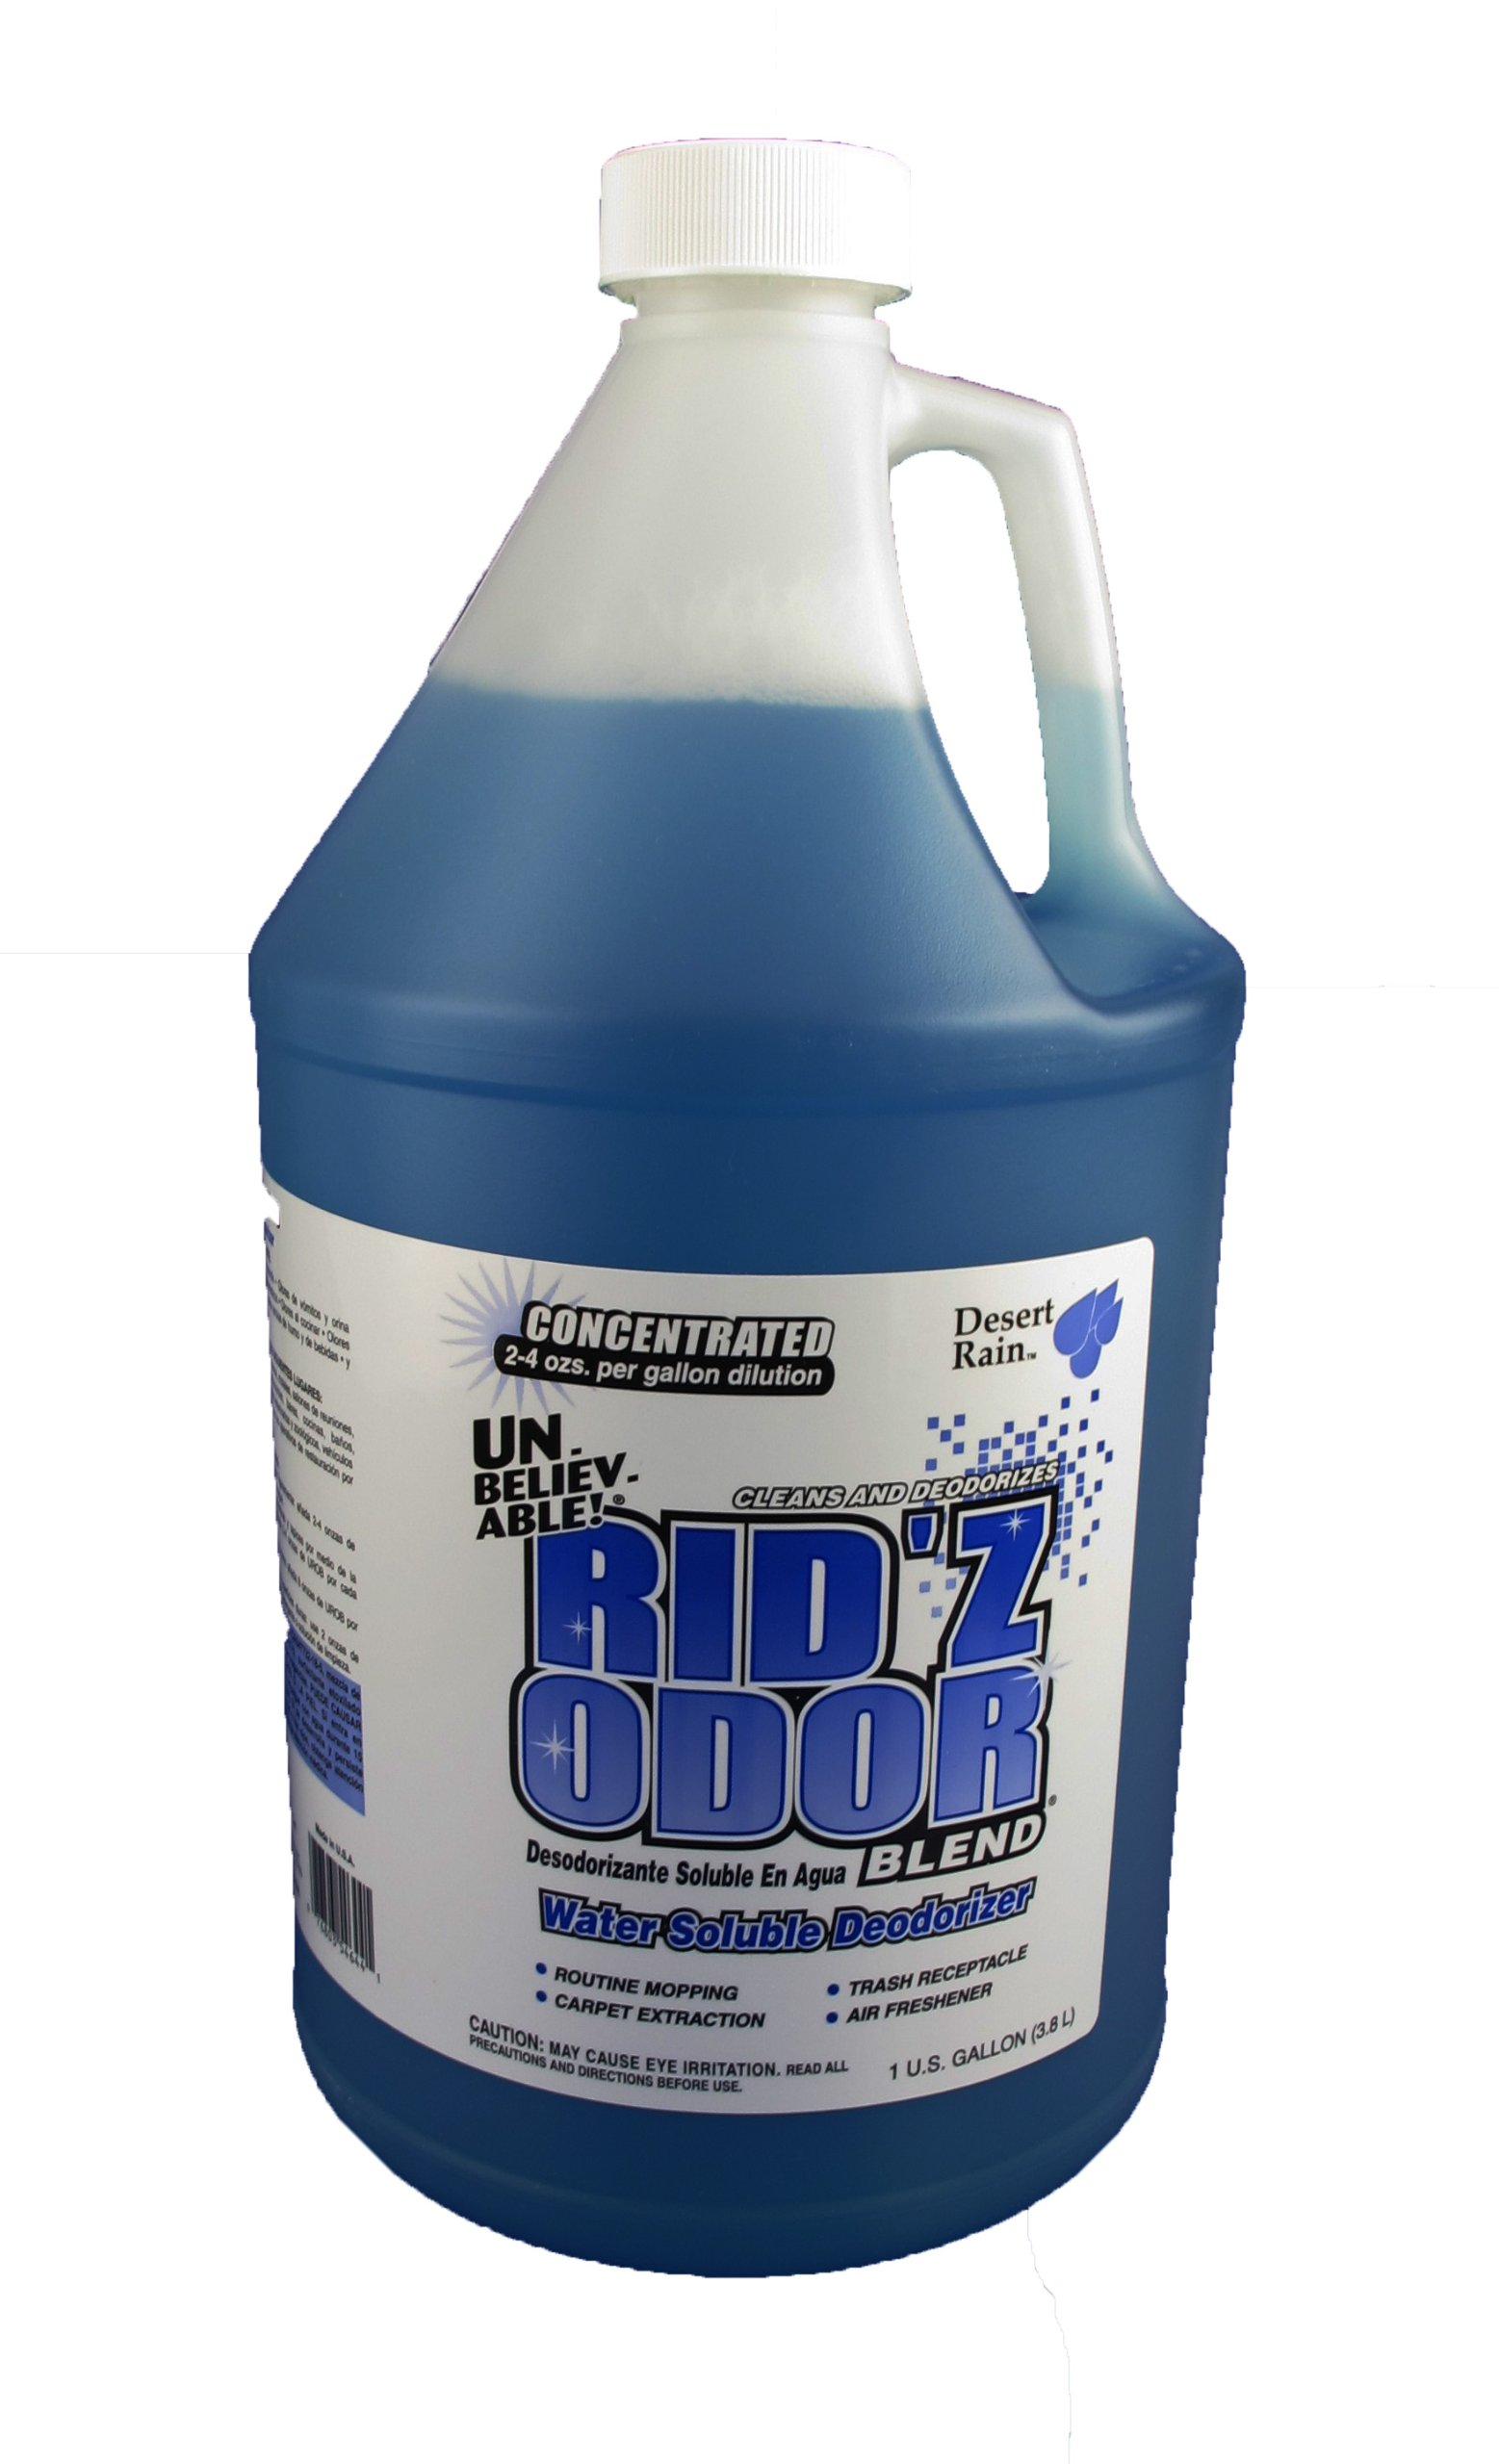 Unbelievable! UROB-644 128 Oz. Rid'z Odor Desert Rain Blend Concentrated Deodorizer (Case of 4) by Core Products Company